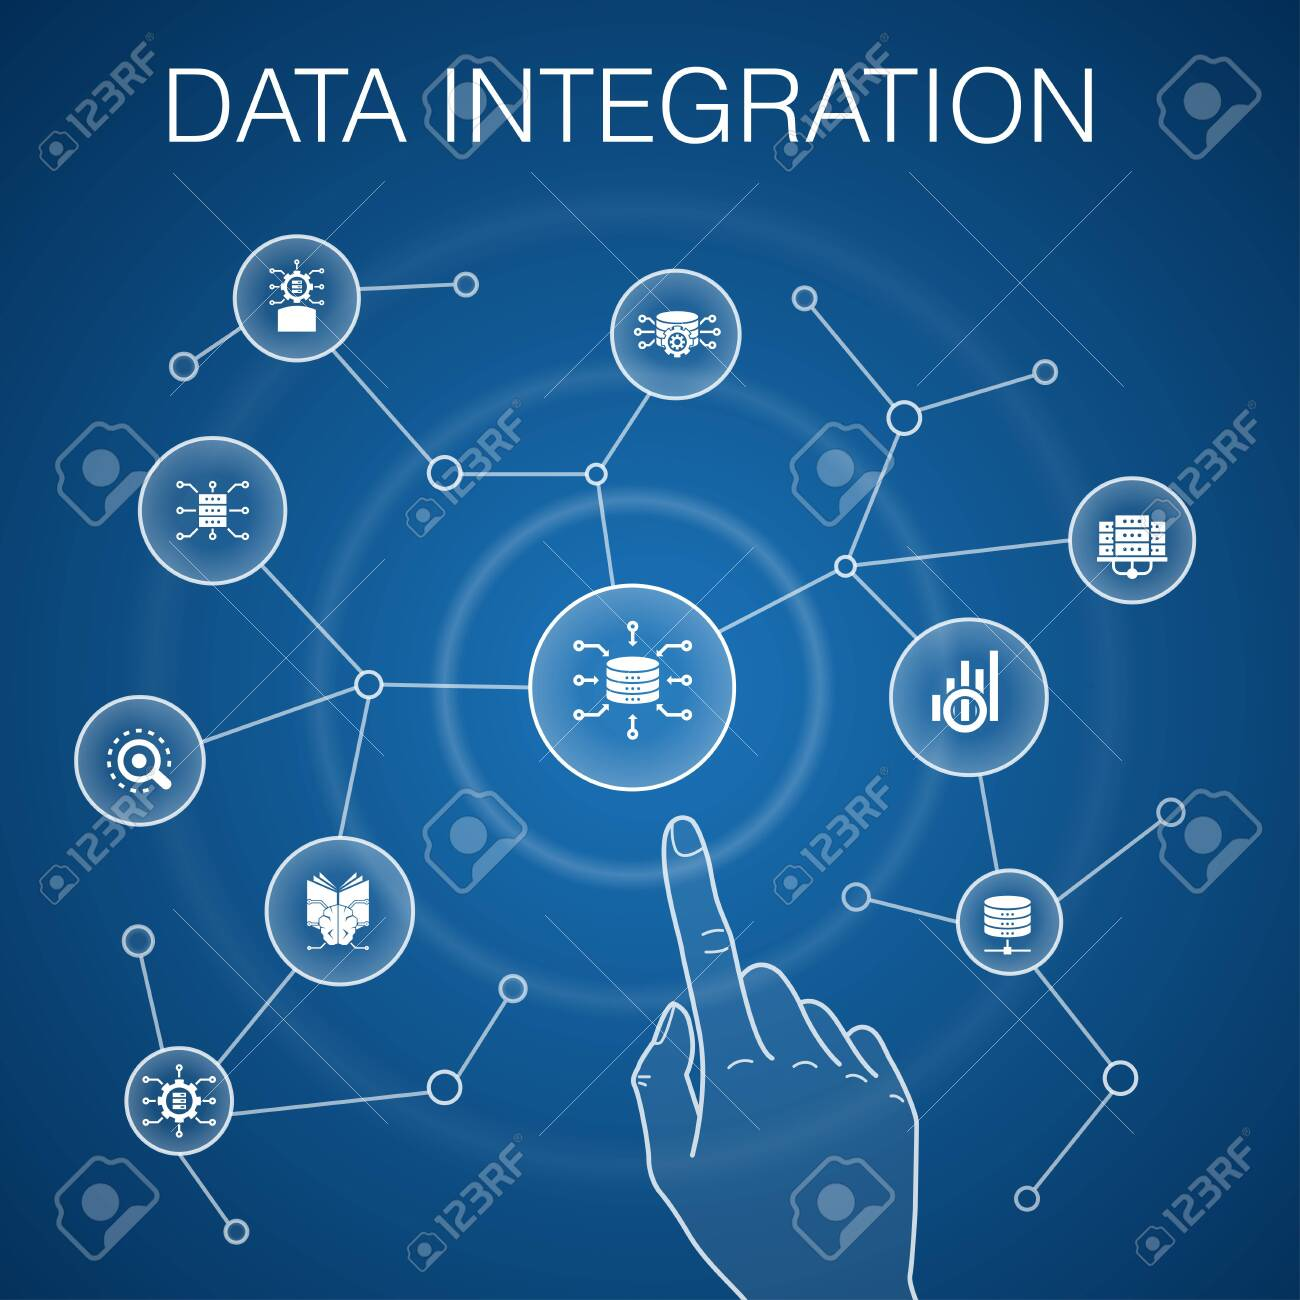 Data integration concept, blue background.database, data scientist, Analytics, Machine Learning simple icons - 132311687